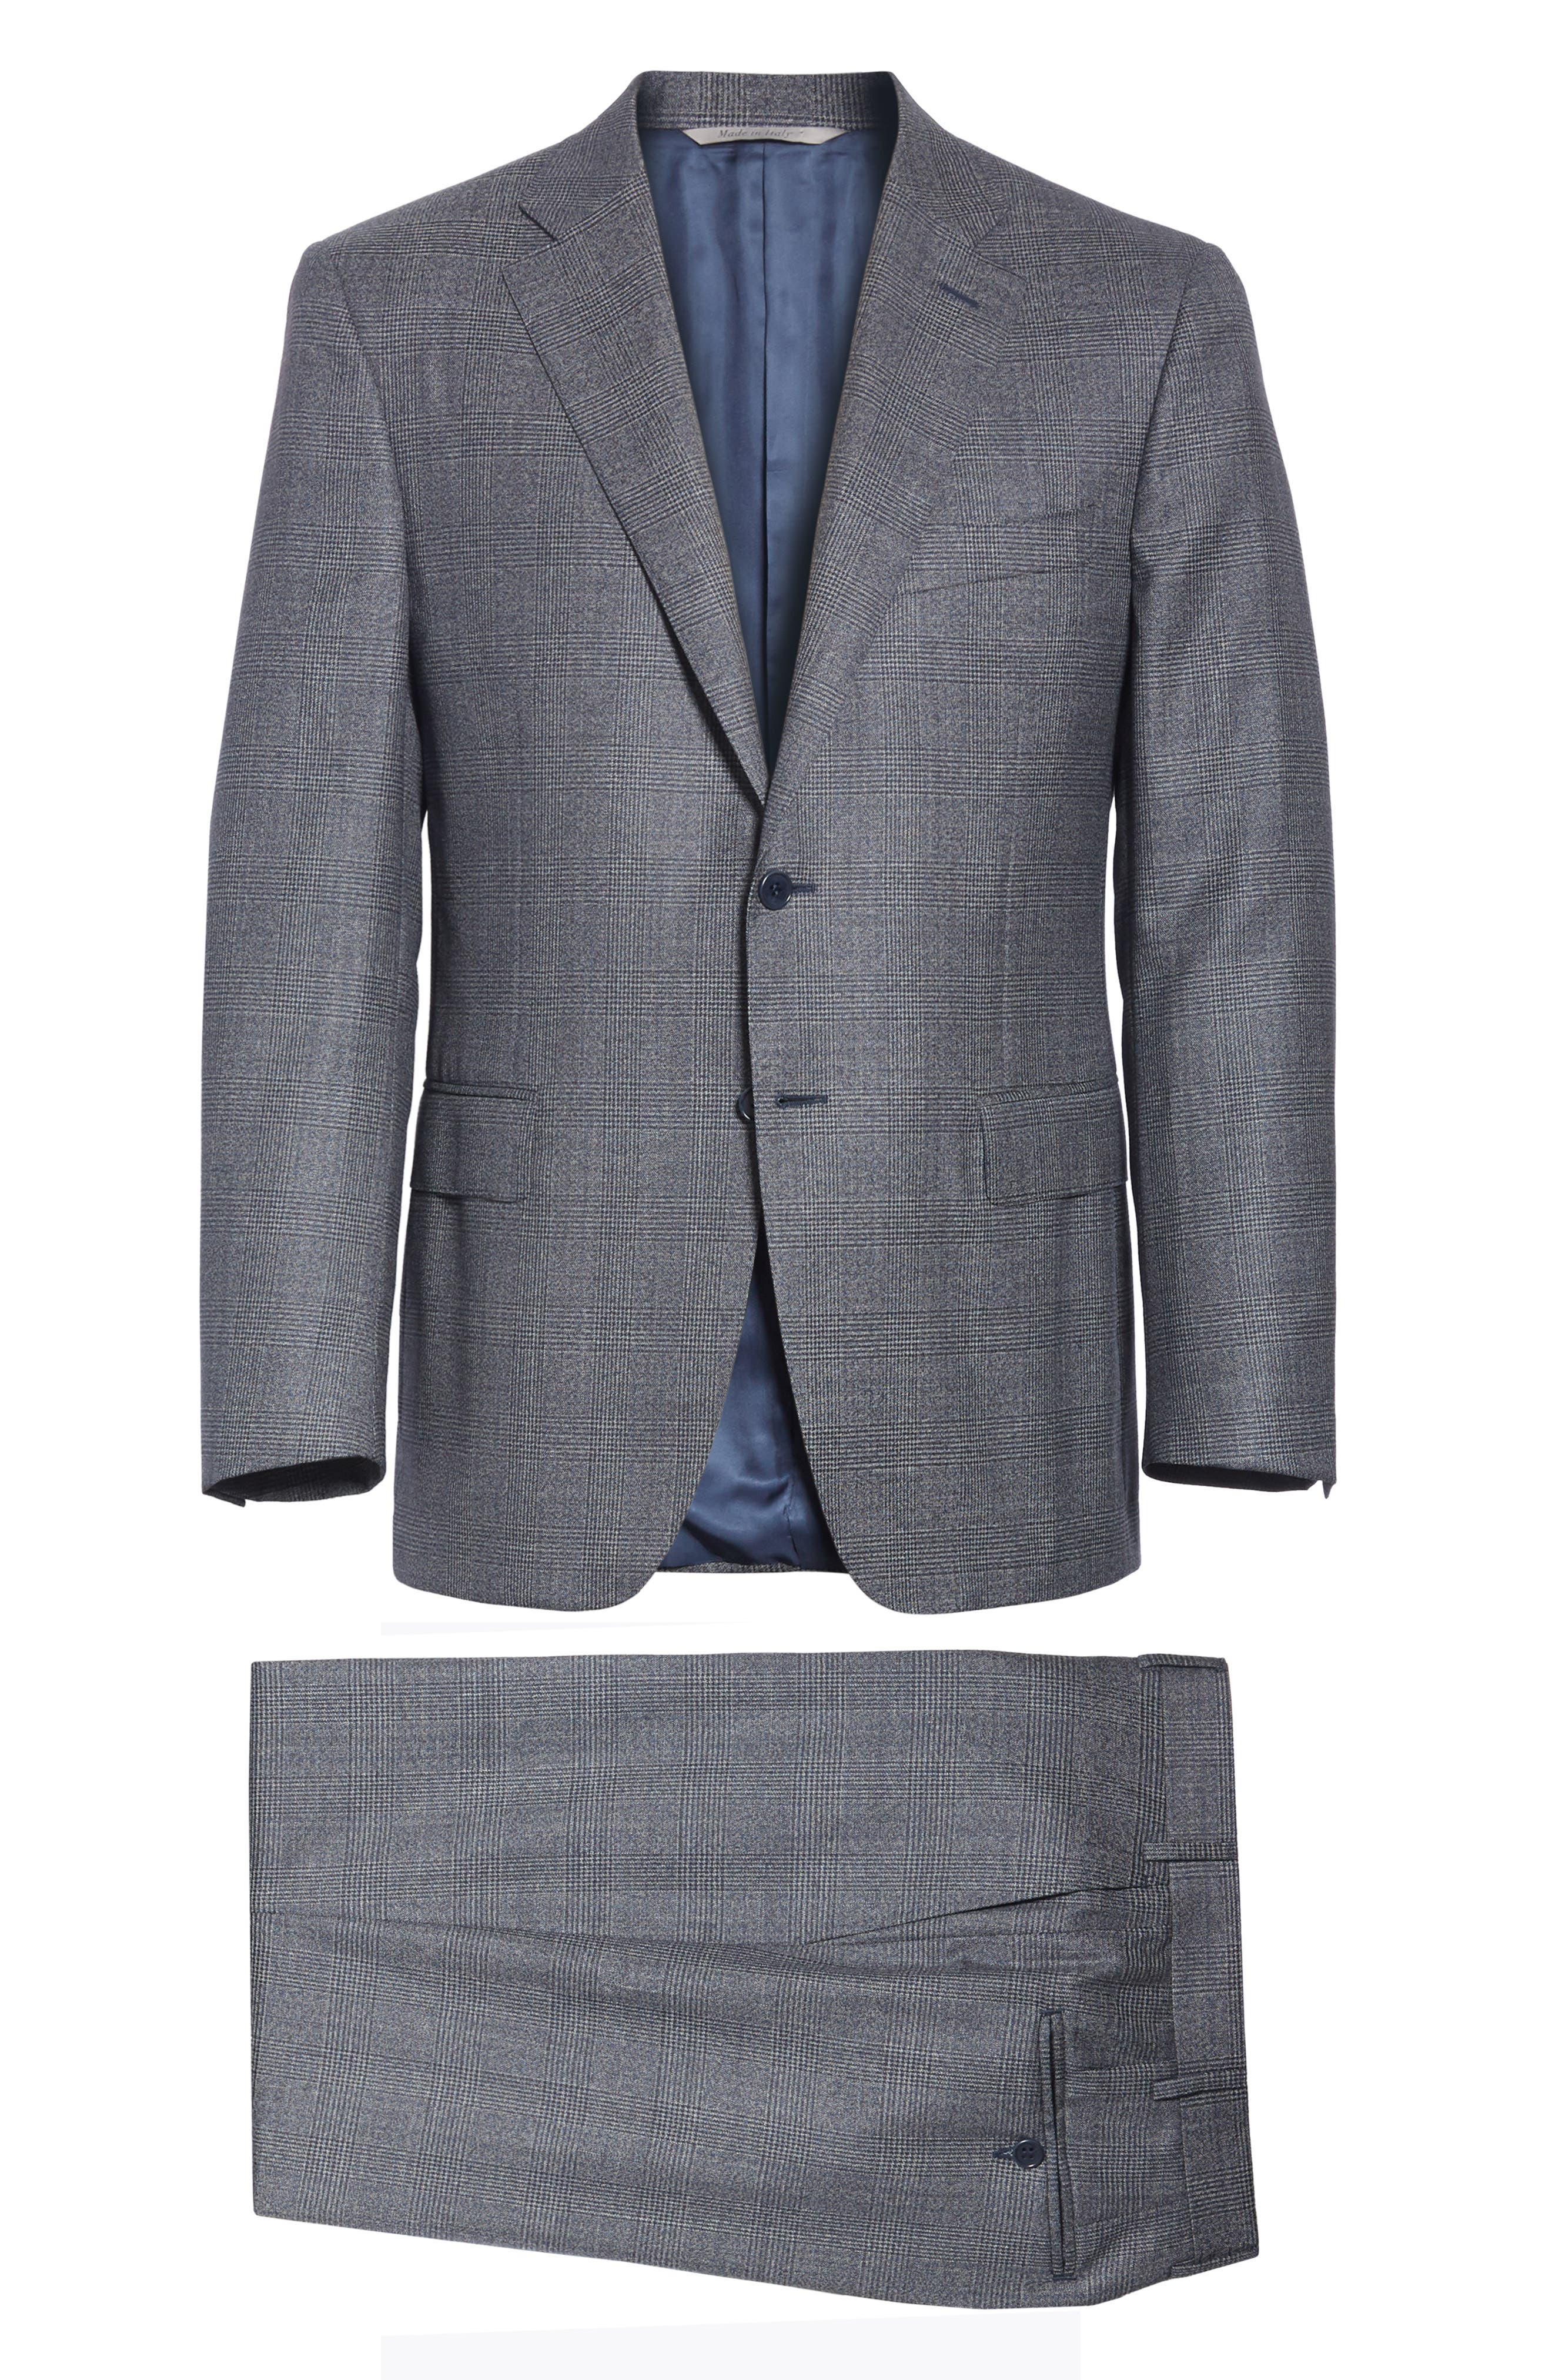 Classic Fit Plaid Wool Suit,                             Alternate thumbnail 7, color,                             MED GREY